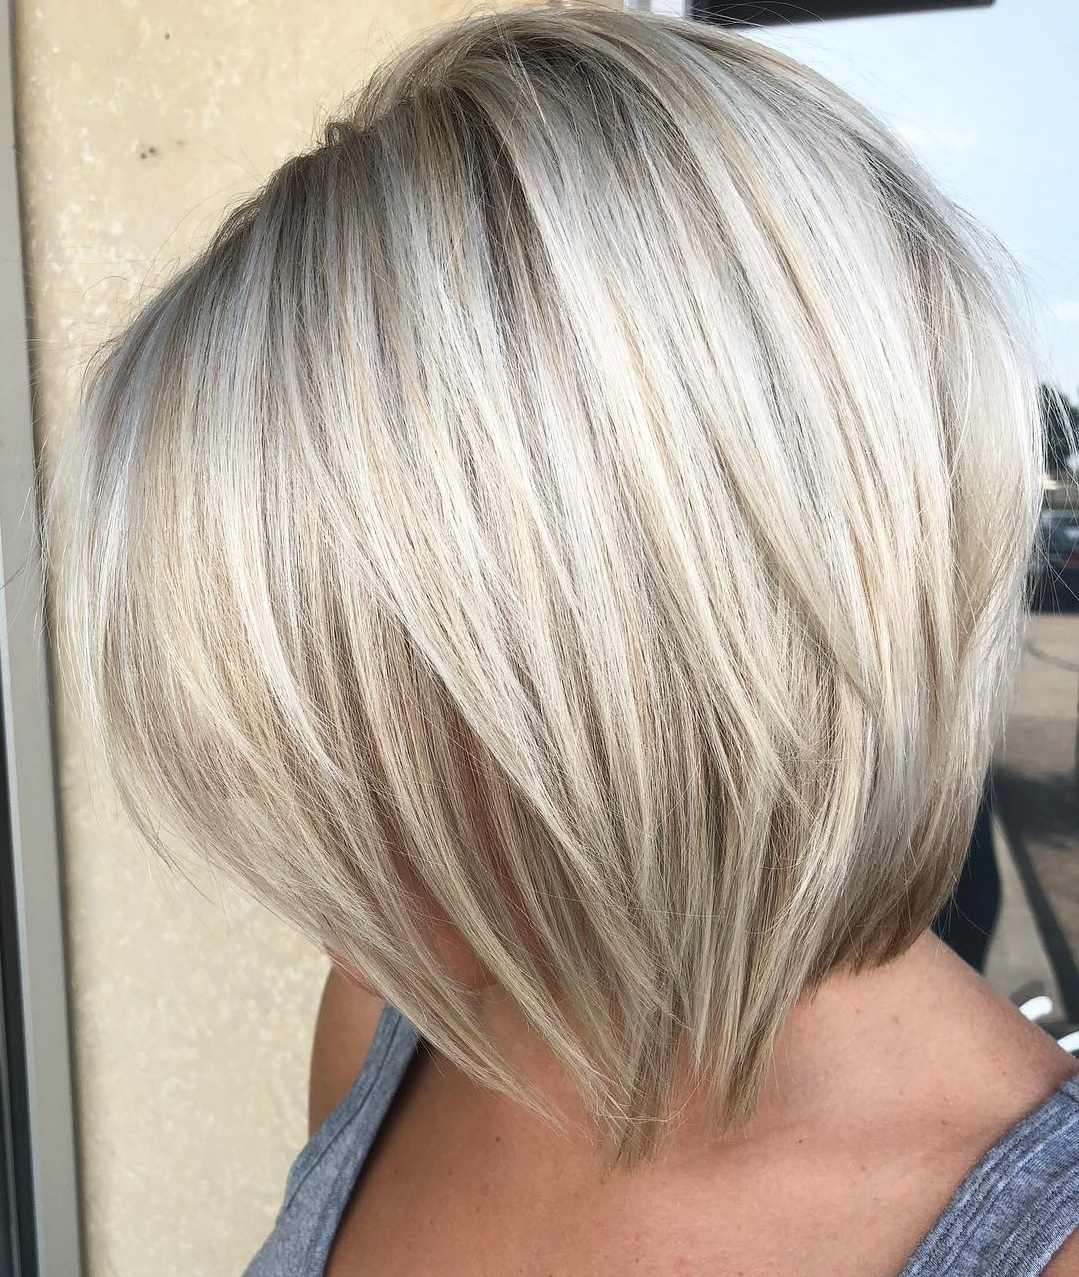 45 Short Hairstyles For Fine Hair To Rock In 2019 inside Hairstyles For Straight Fine Grey Hair